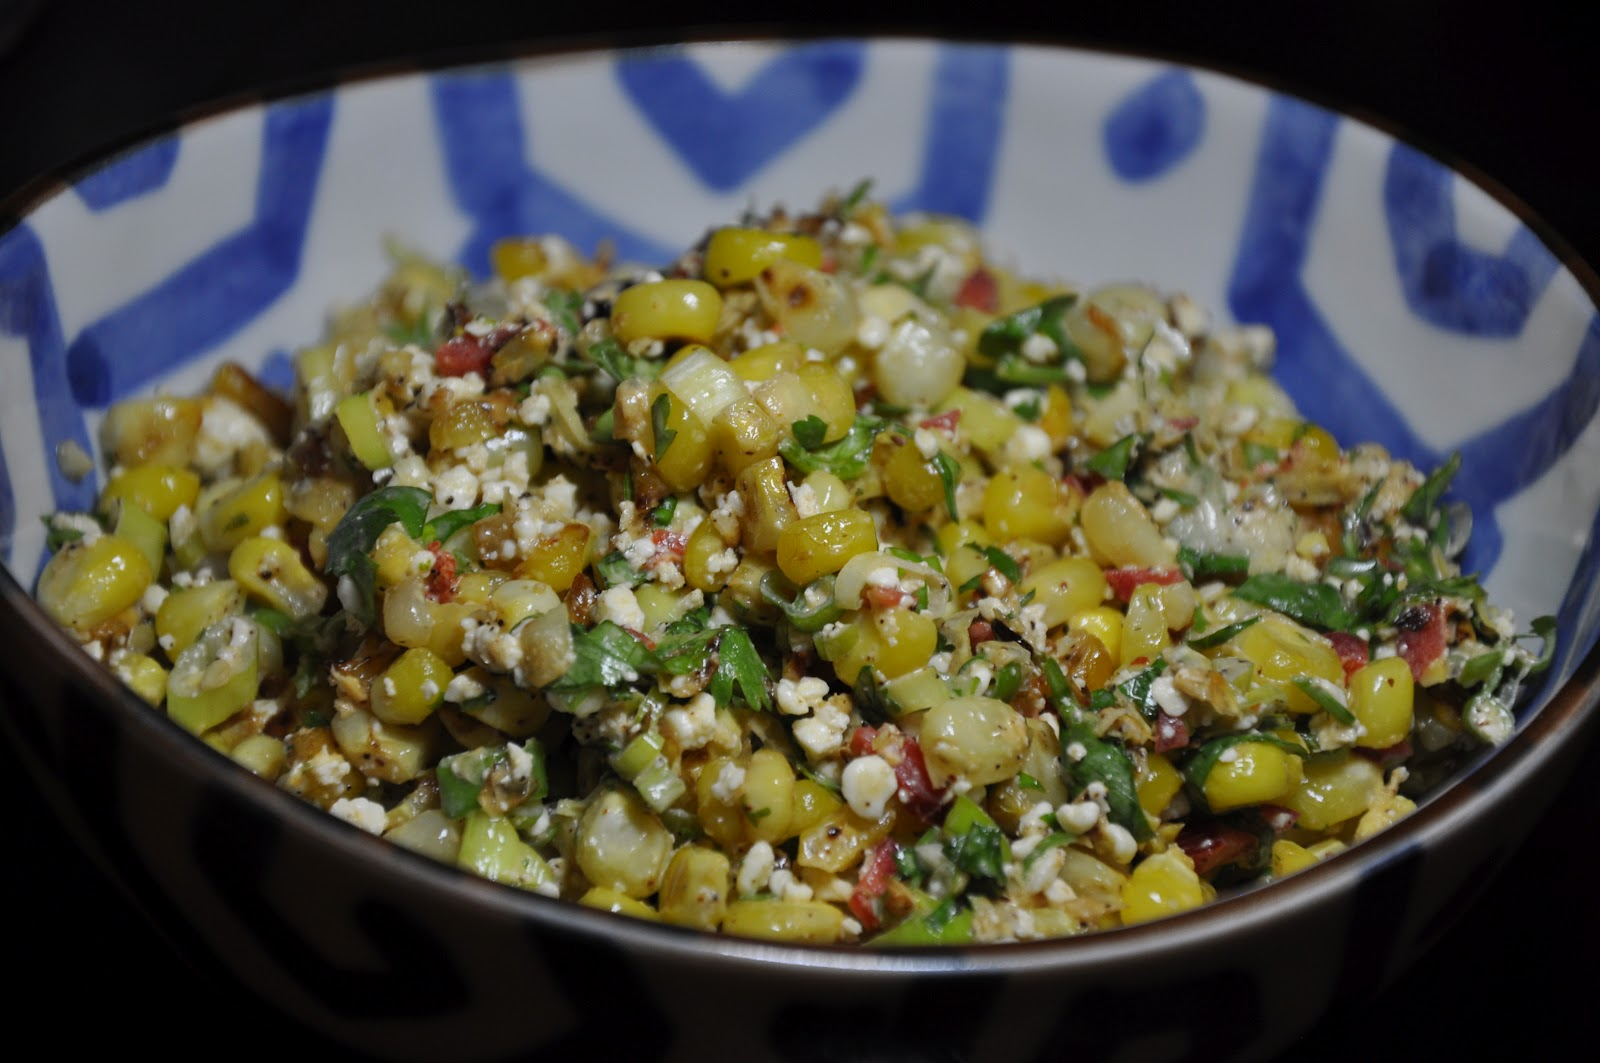 Slice of Rice: Esquites (Mexican Street Corn Salad)